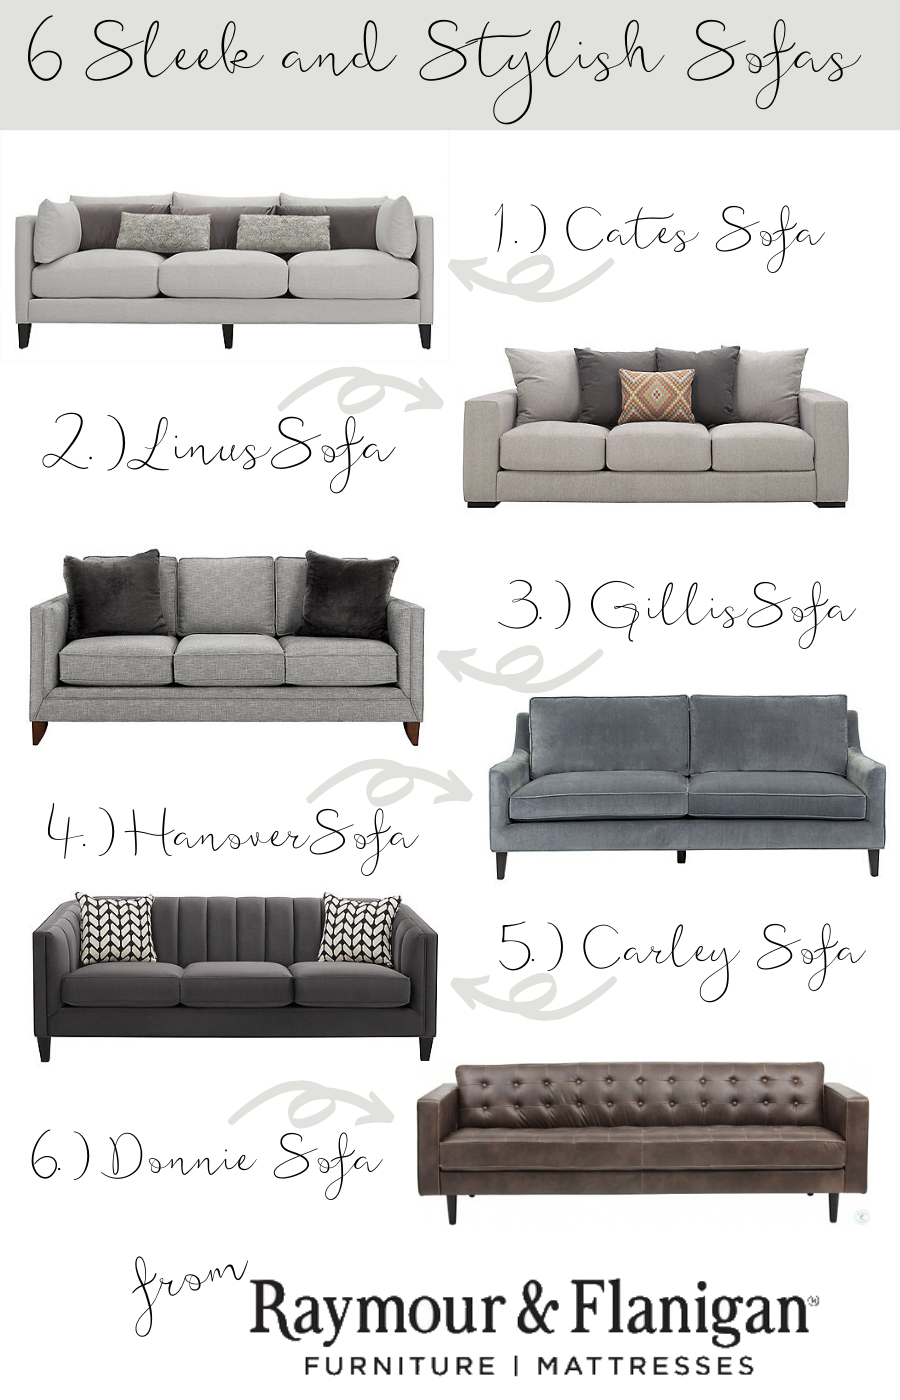 6 Modern And Stylish Sofas From Raymour Flanigan And Living Room Updates Made By Carli